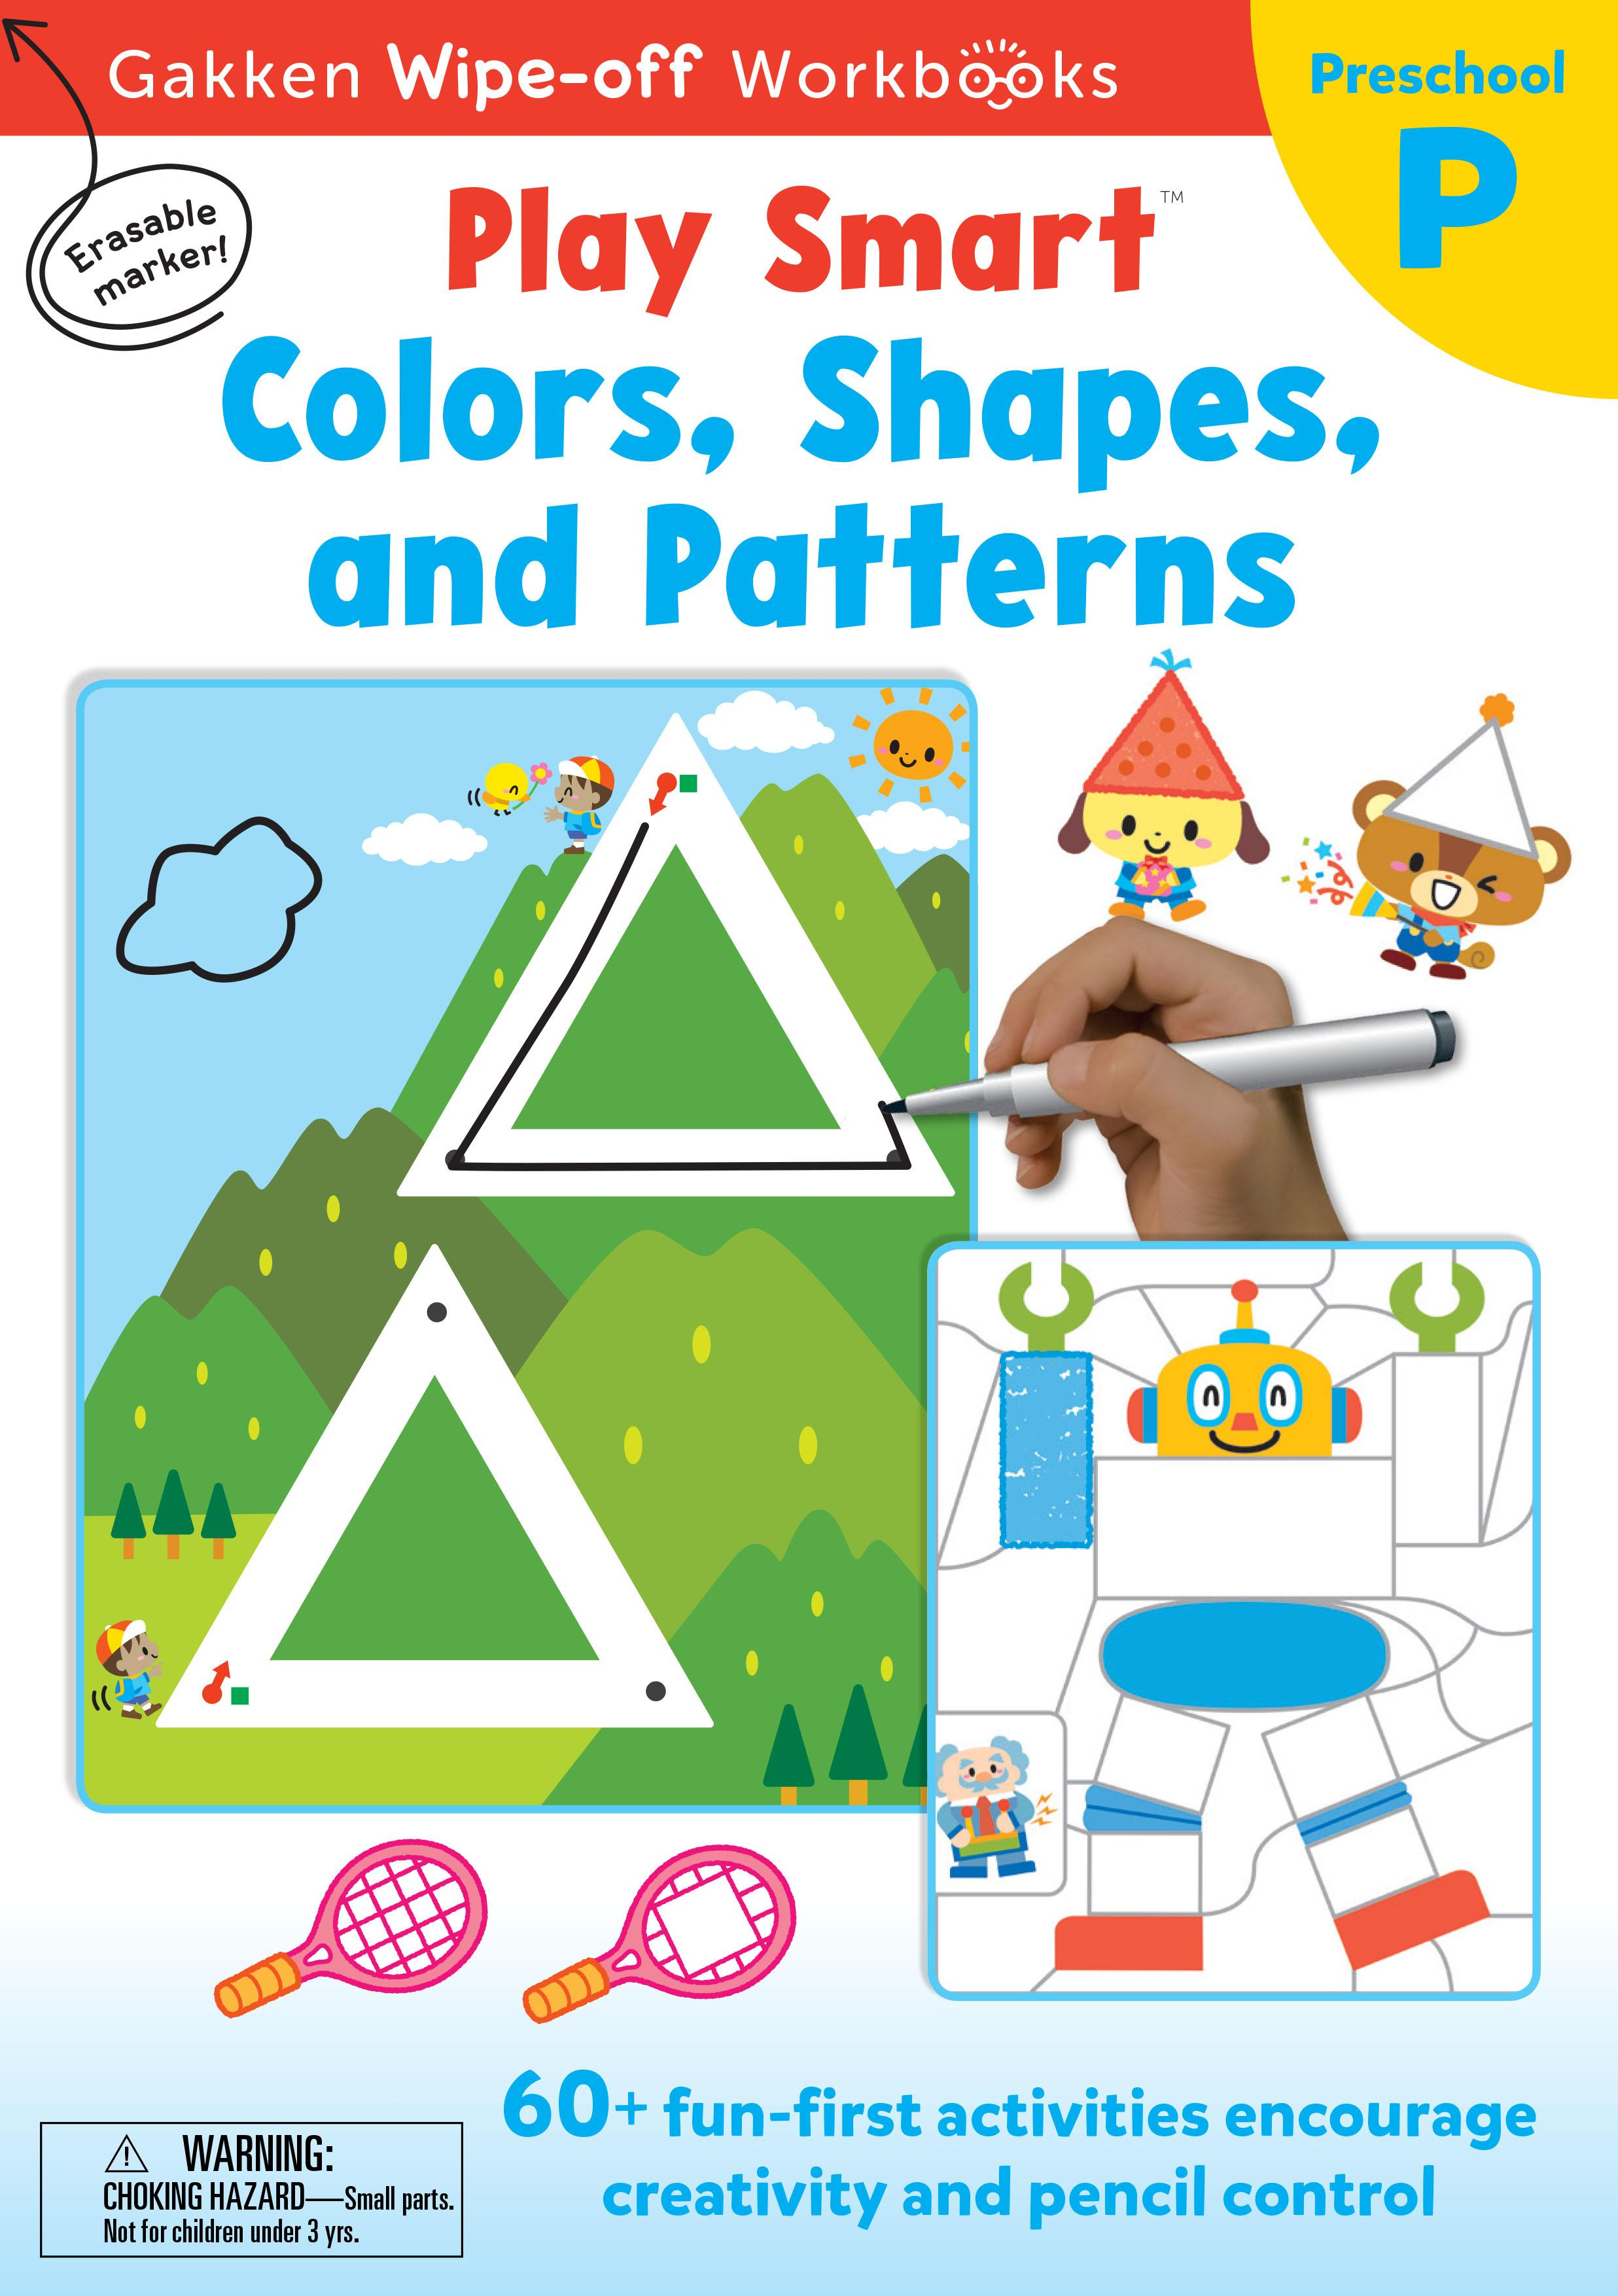 PlaySmart : Wipe&Off Colors, Shapes, and Patterns